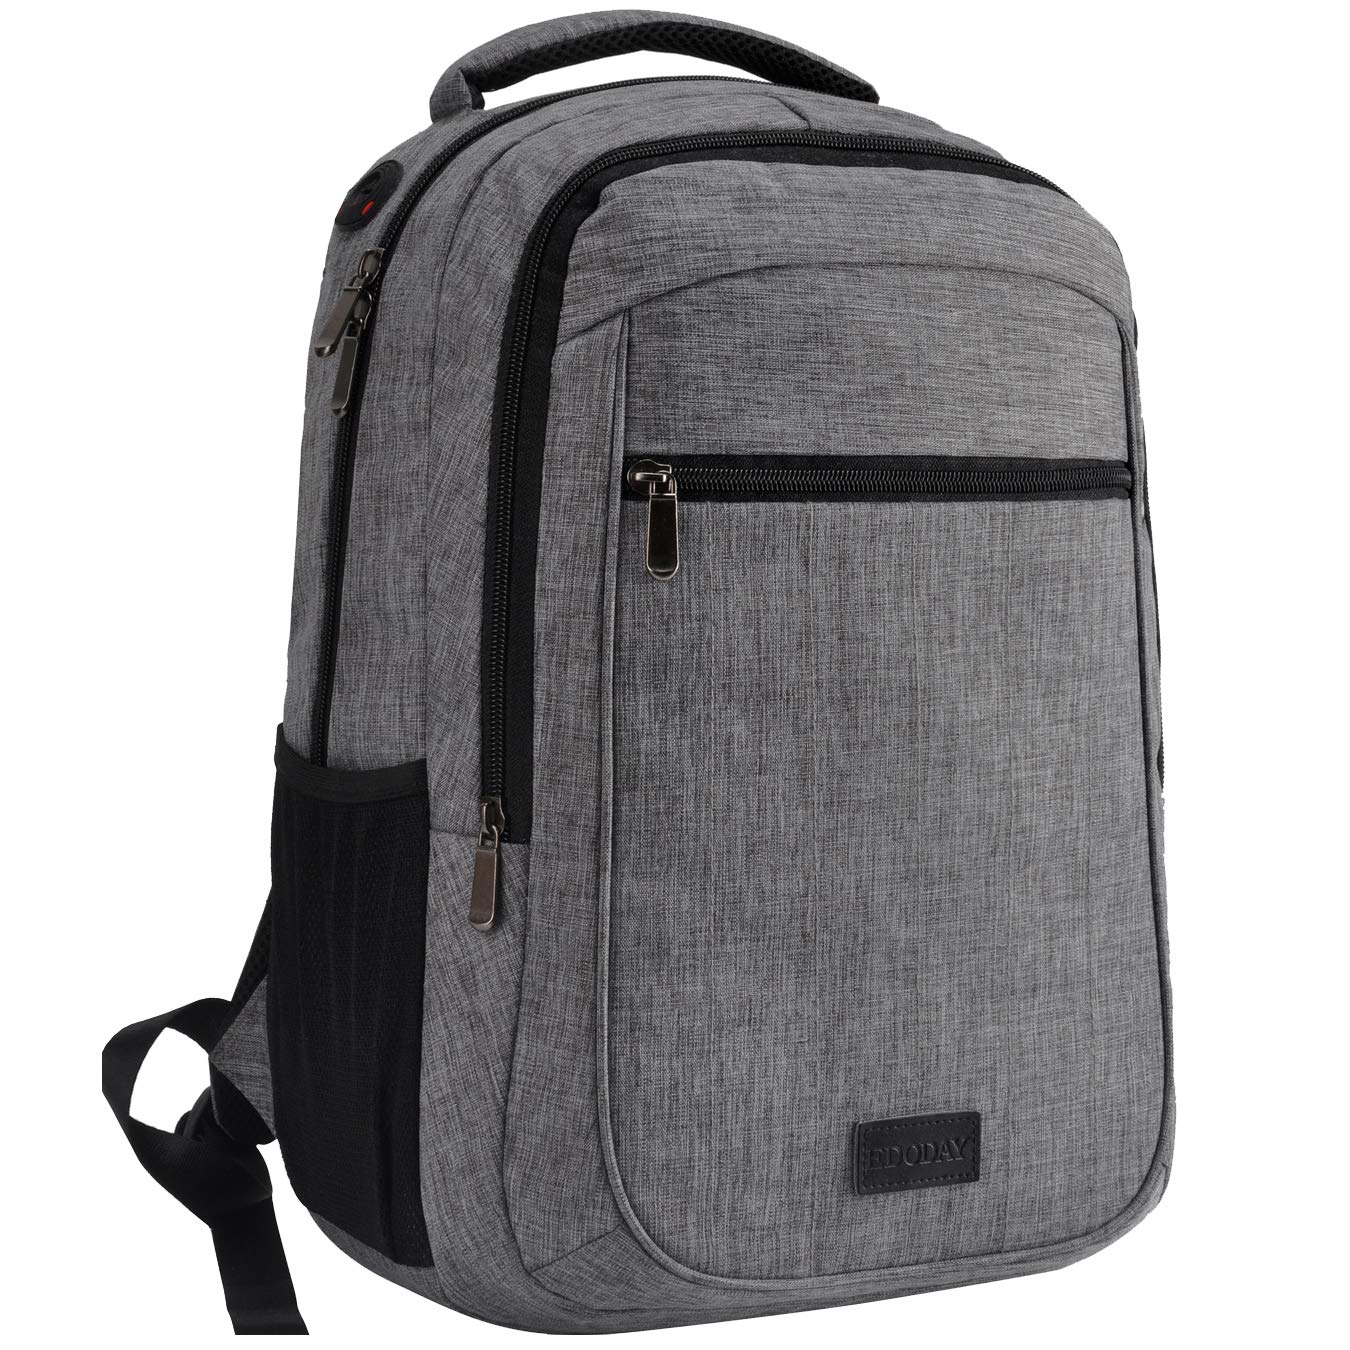 EDODAY Casual Backpack,Daypack Backpack for Women Men Colleage High School, Travel Backpack Daypack